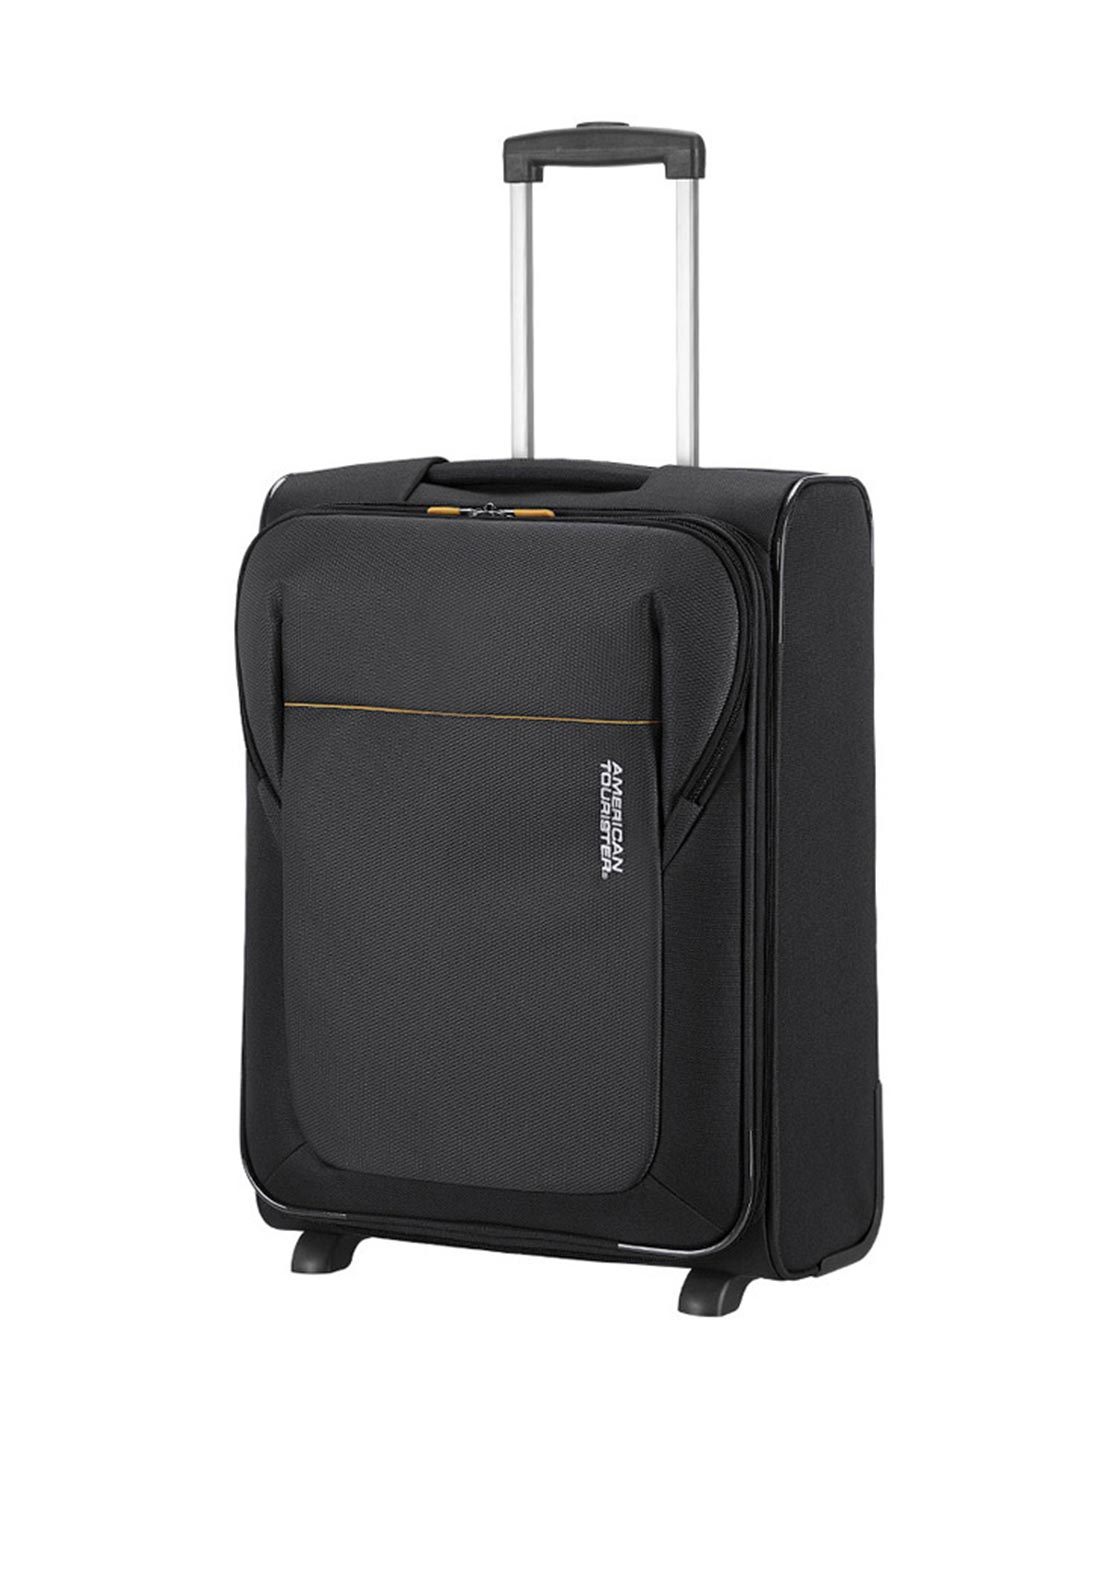 American Tourister San Francisco Upright Cabin Size Suitcase 55cm, Black